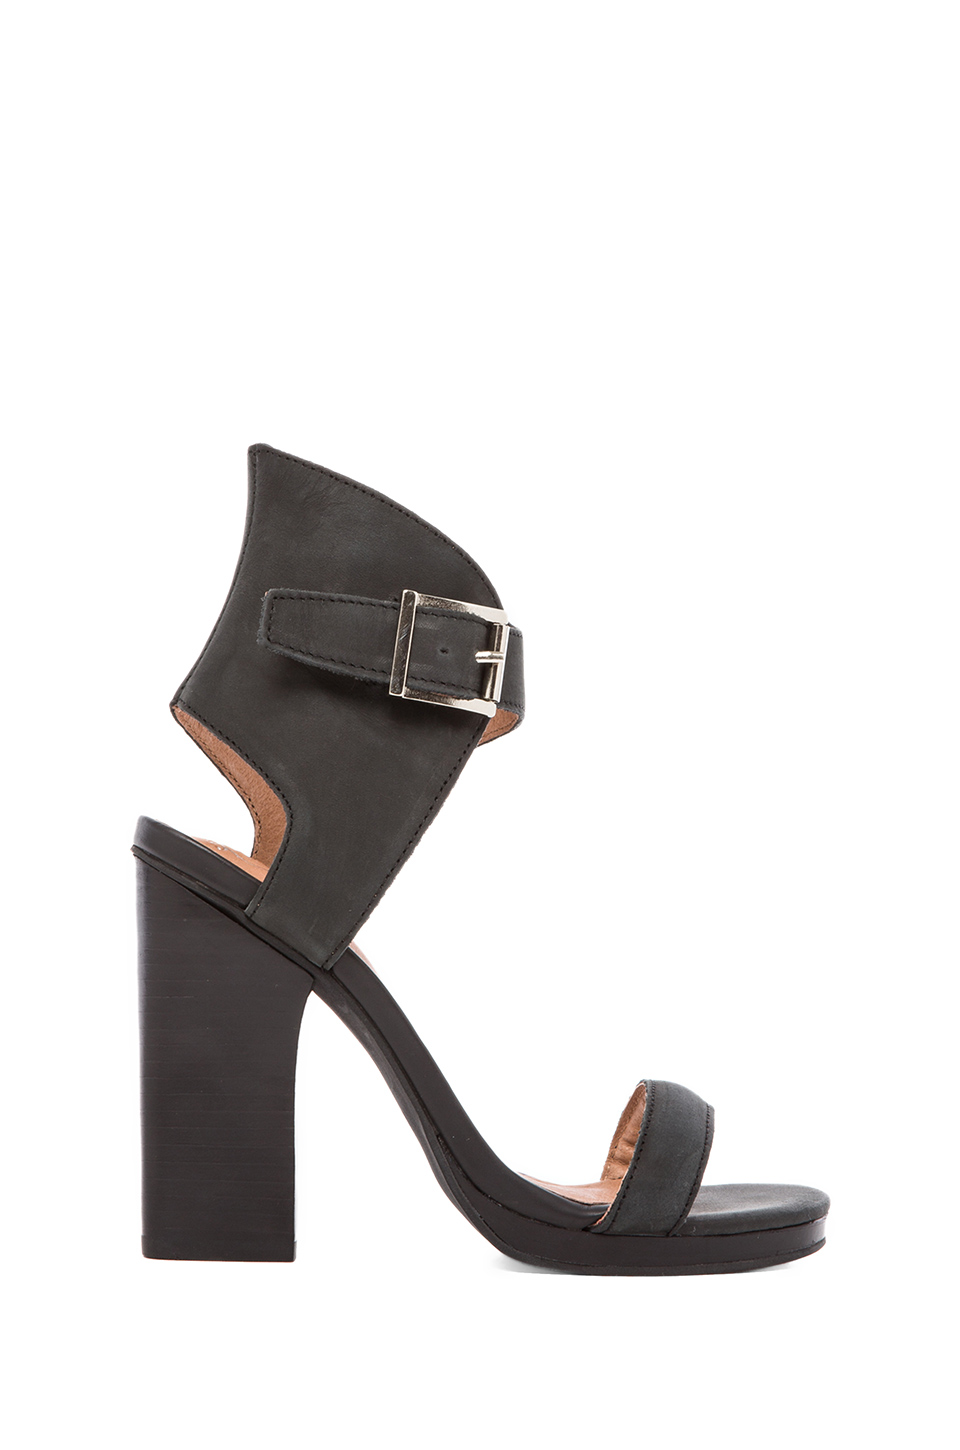 Jeffrey Campbell Shindig Heel in Black Washed Leather | REVOLVE